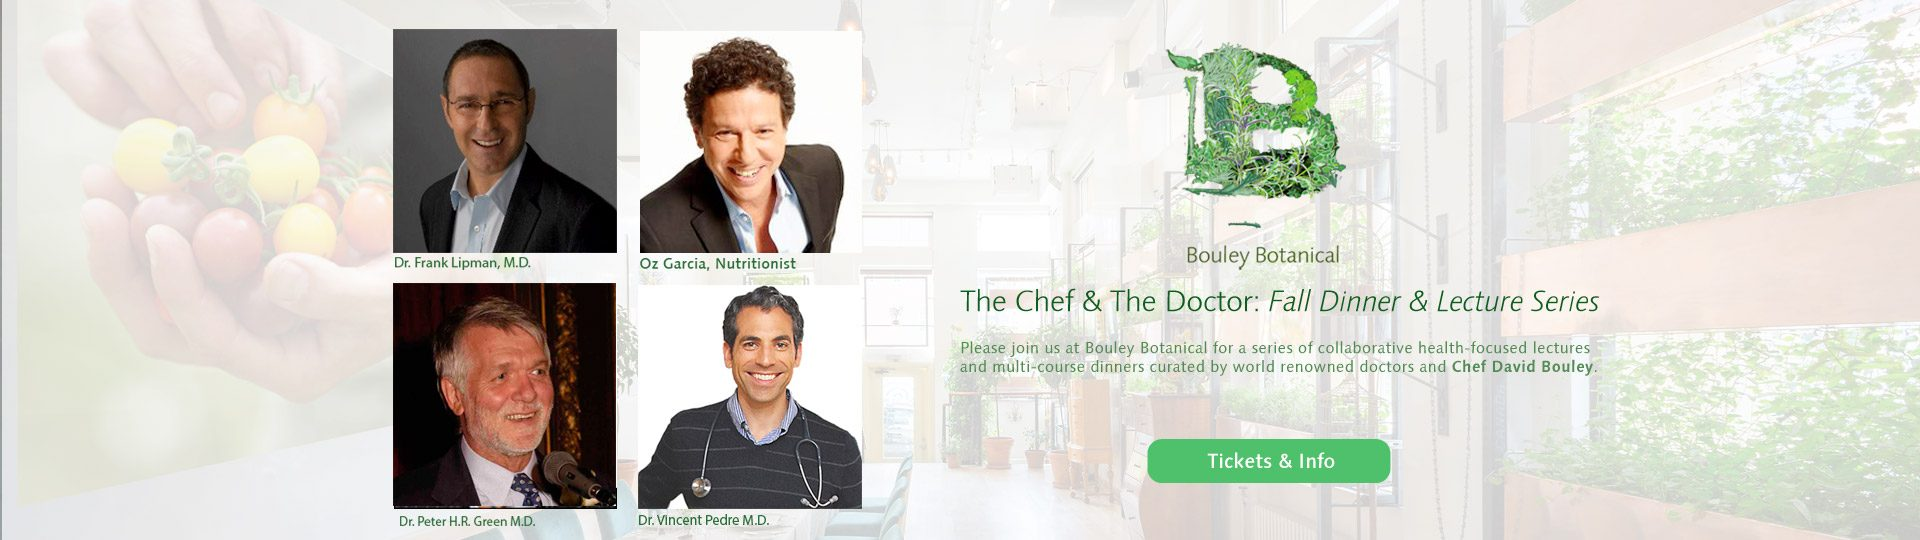 Bouley Botanical Chef and Doctor Fall 2015 Series